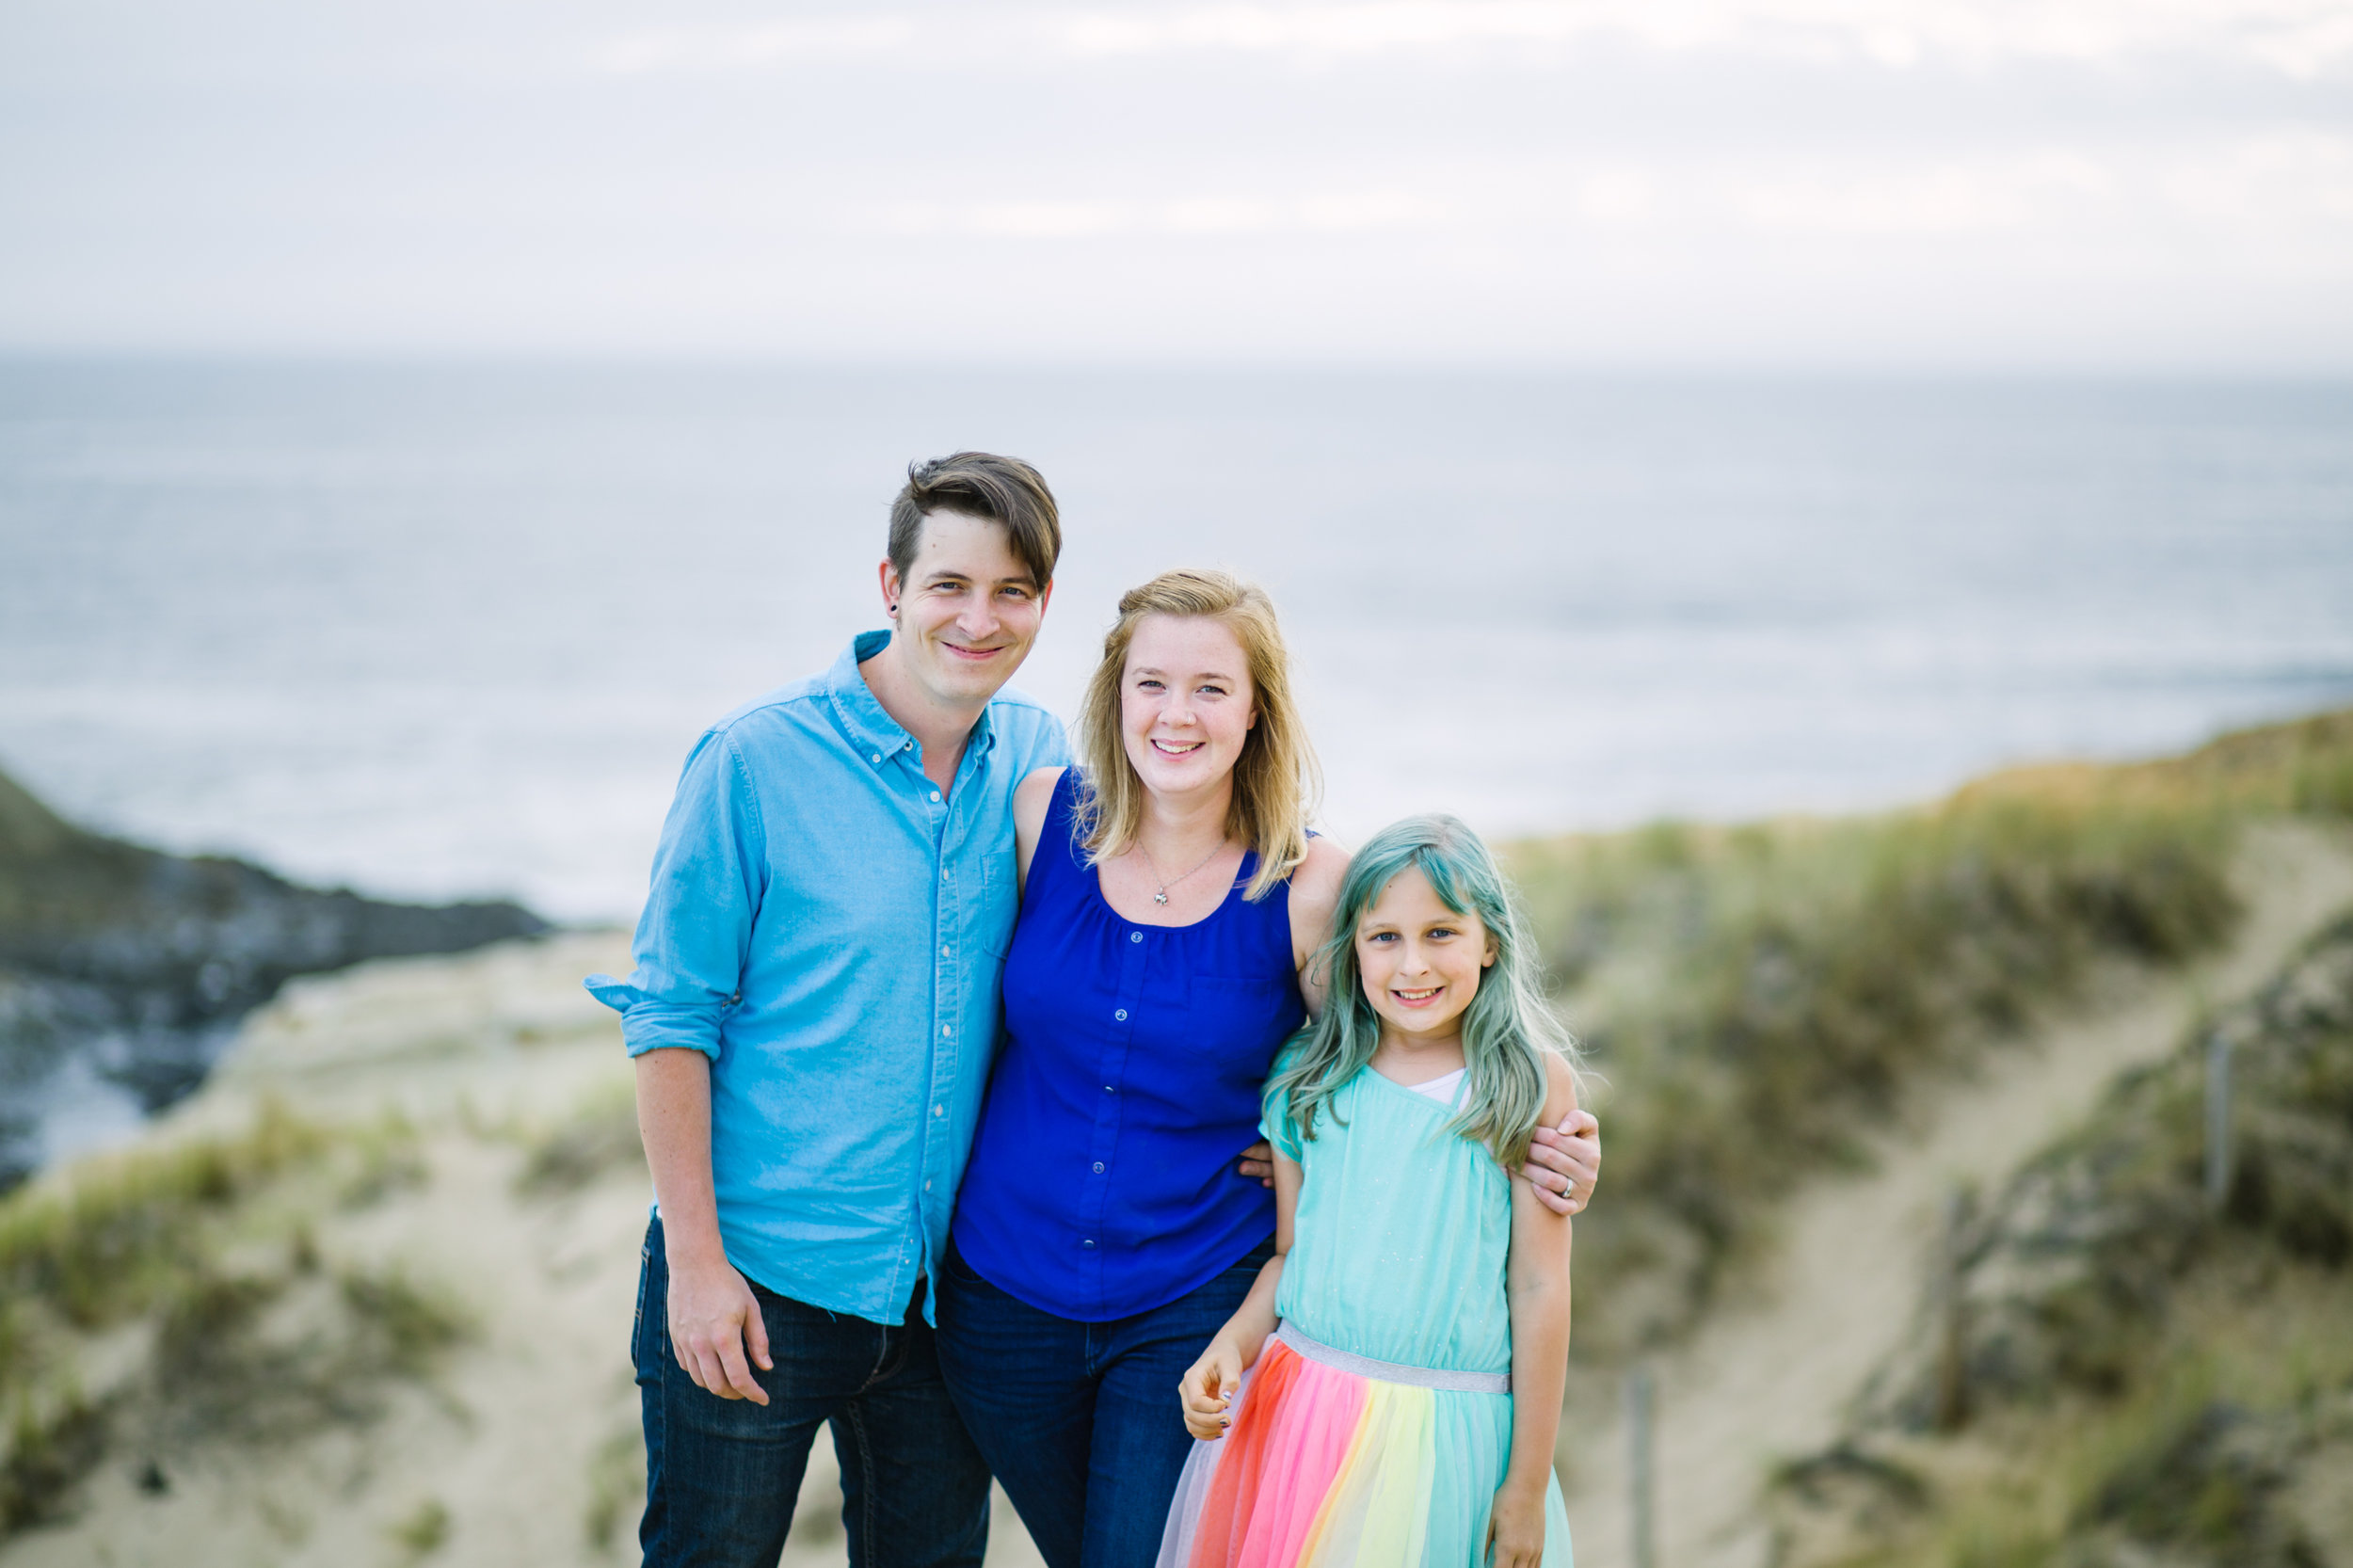 pacific-city-family-photography-12.jpg